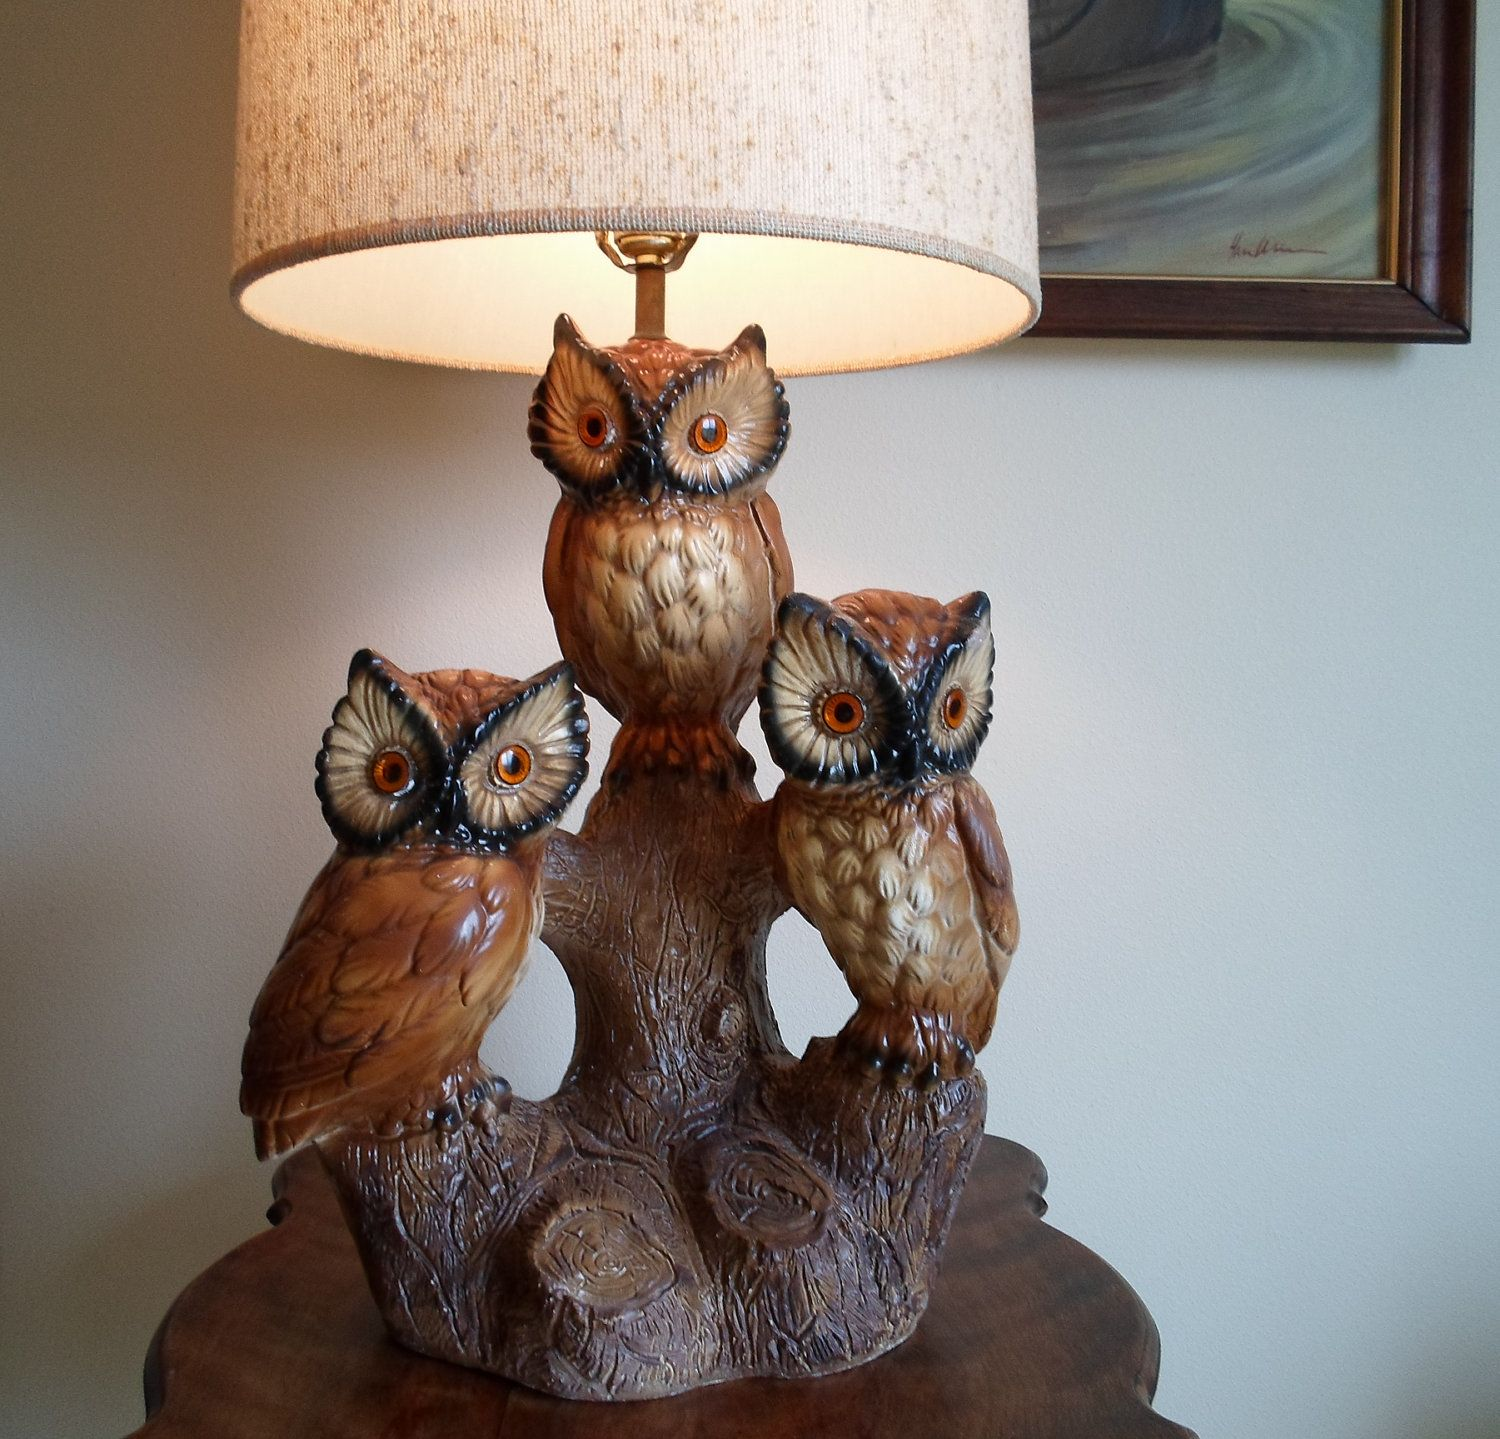 Good Vintage Owl Table Lamp With Shade Very Retro Three Owls On An Old Stump.